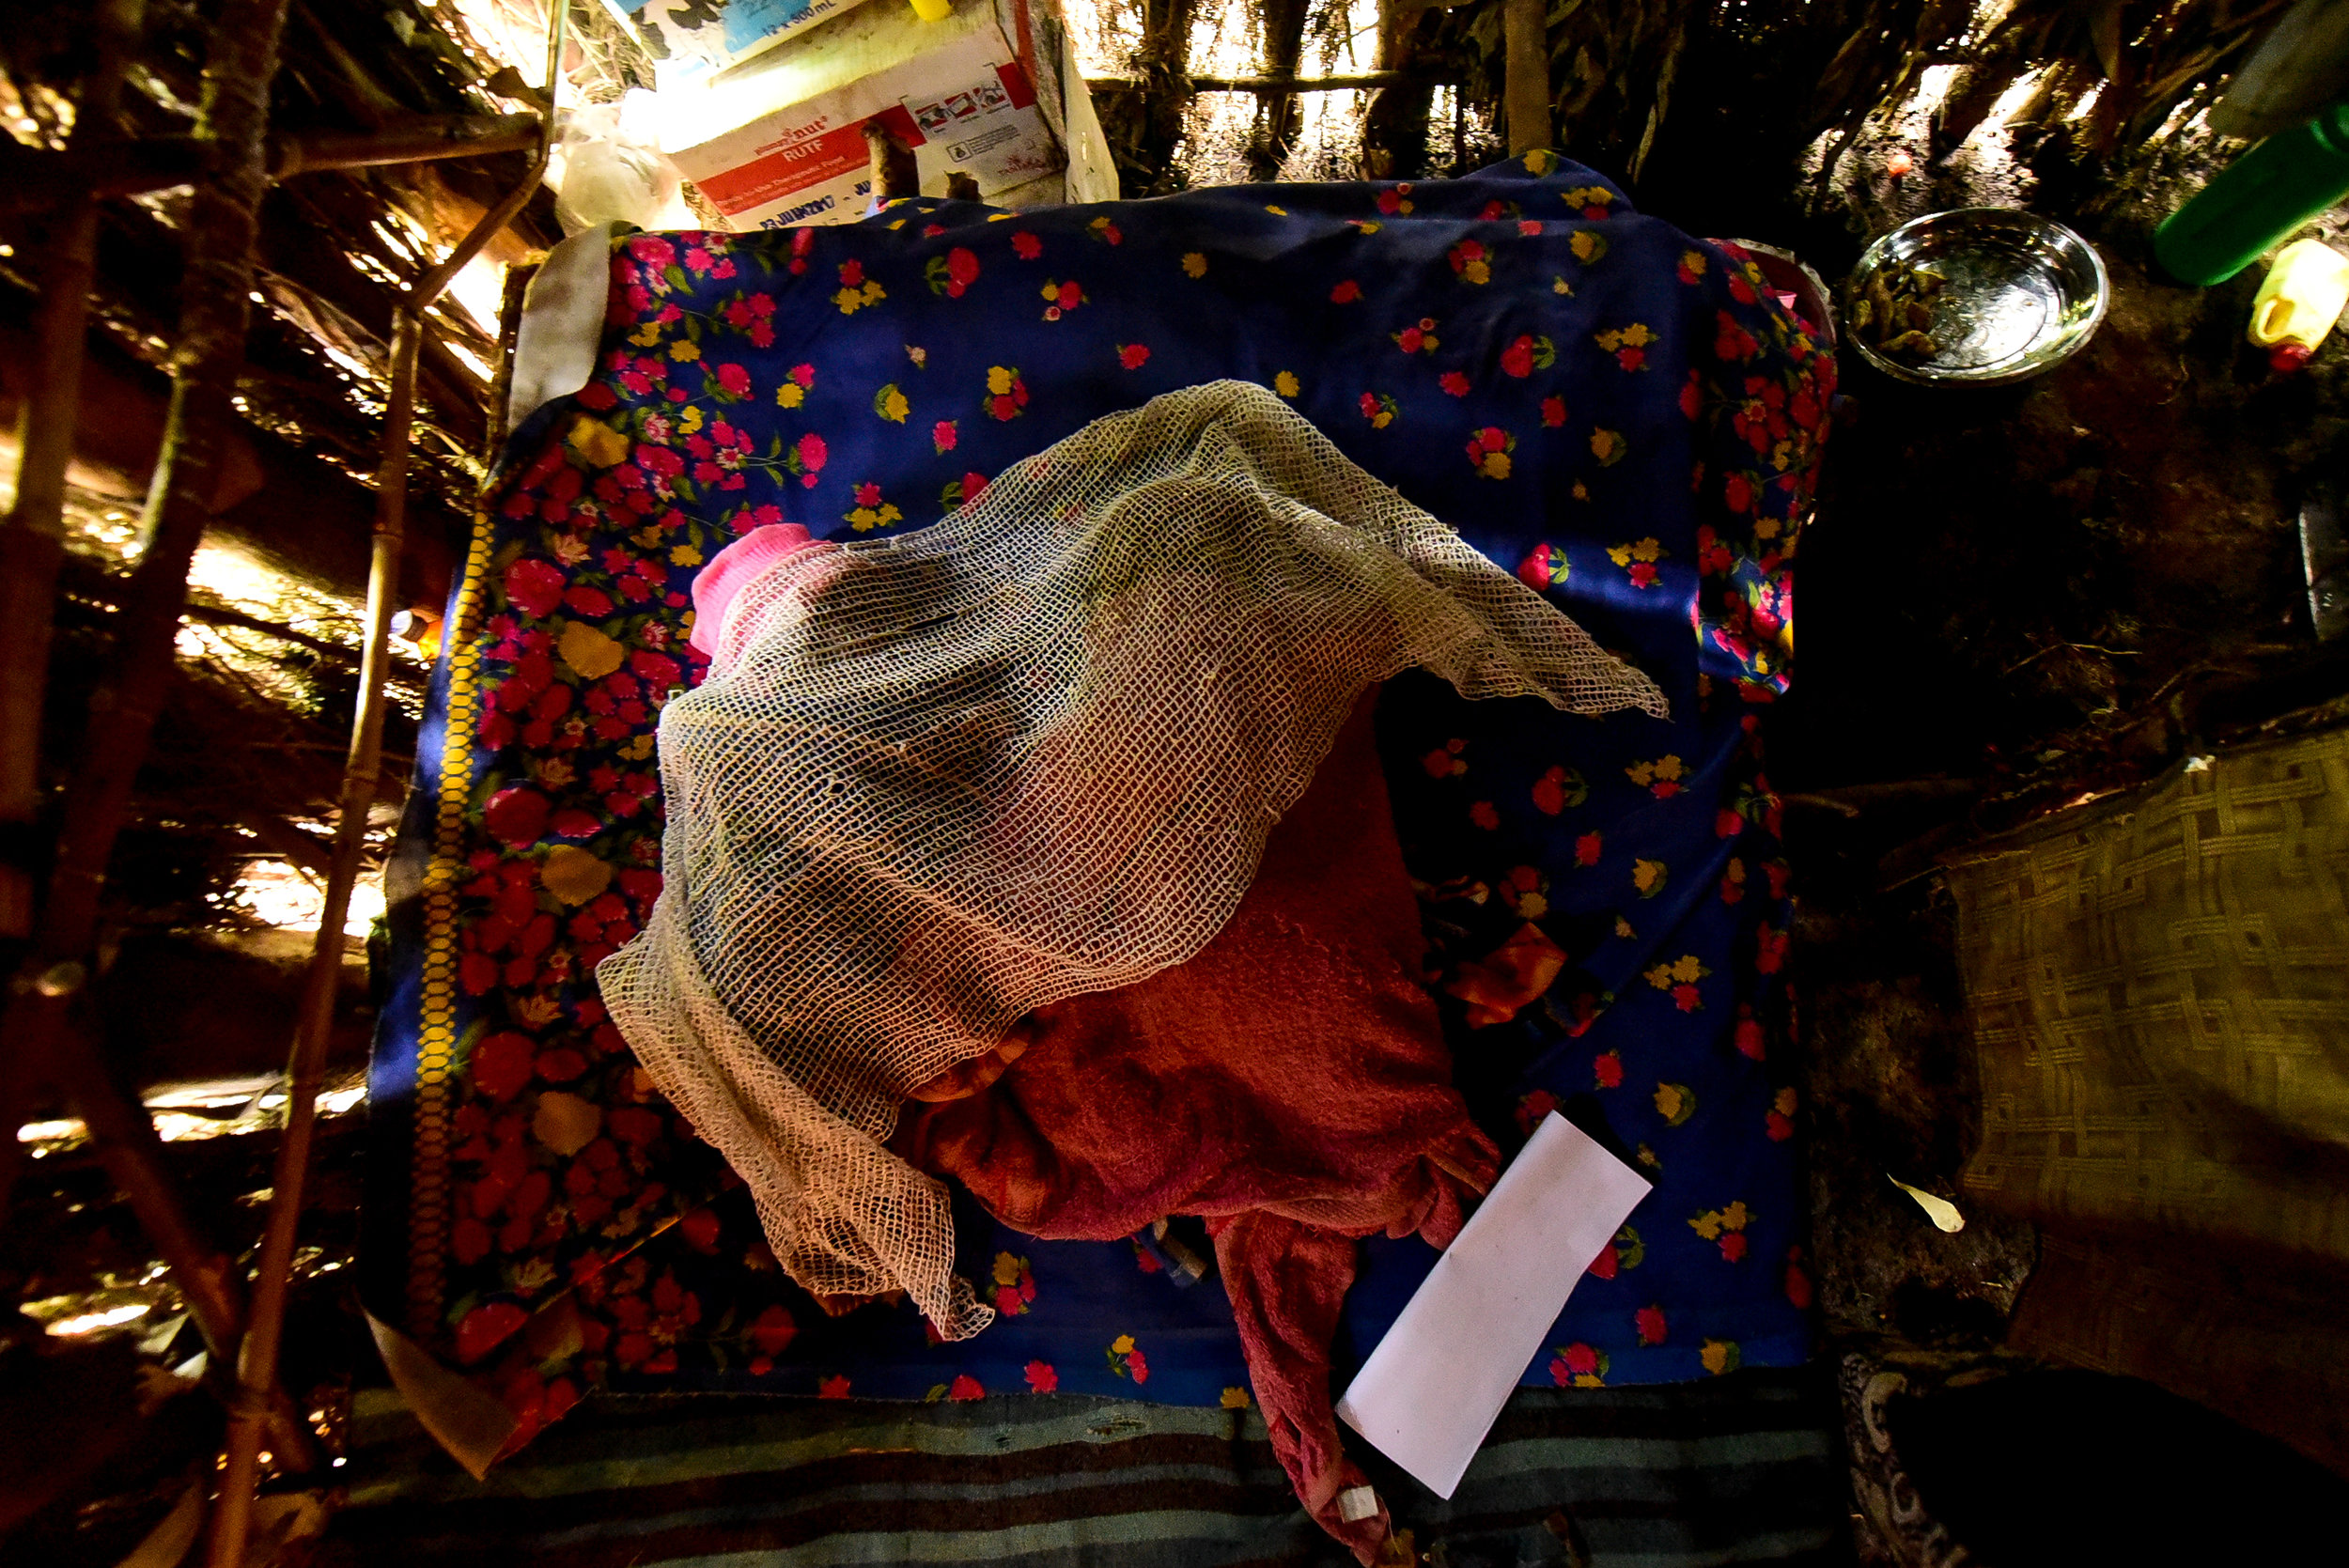 Uwiduhaye Divine and Muhawenimana Kevine sleep in the single bed their mother Nyirantugane Claudine and her husband own. The family of four lives in a single room shack made of banana leaves.